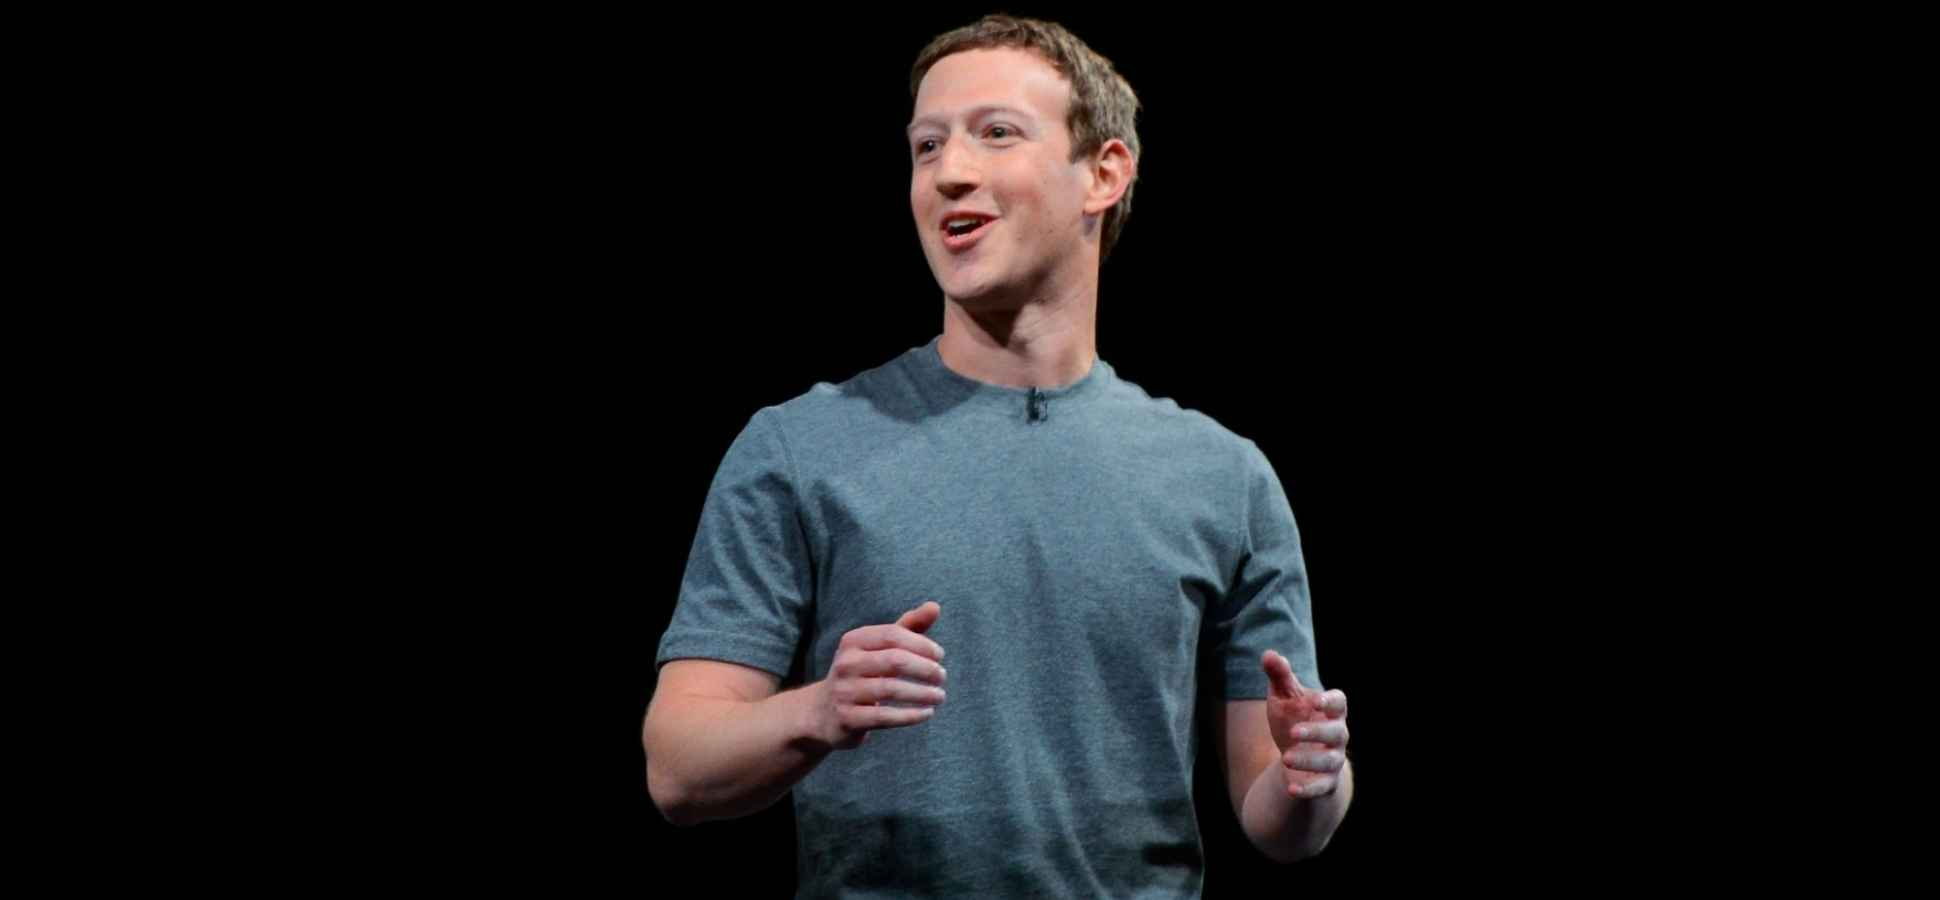 Here's Why Mark Zuckerberg Sets Himself a Personal Goal Every Year (and You Should Too)